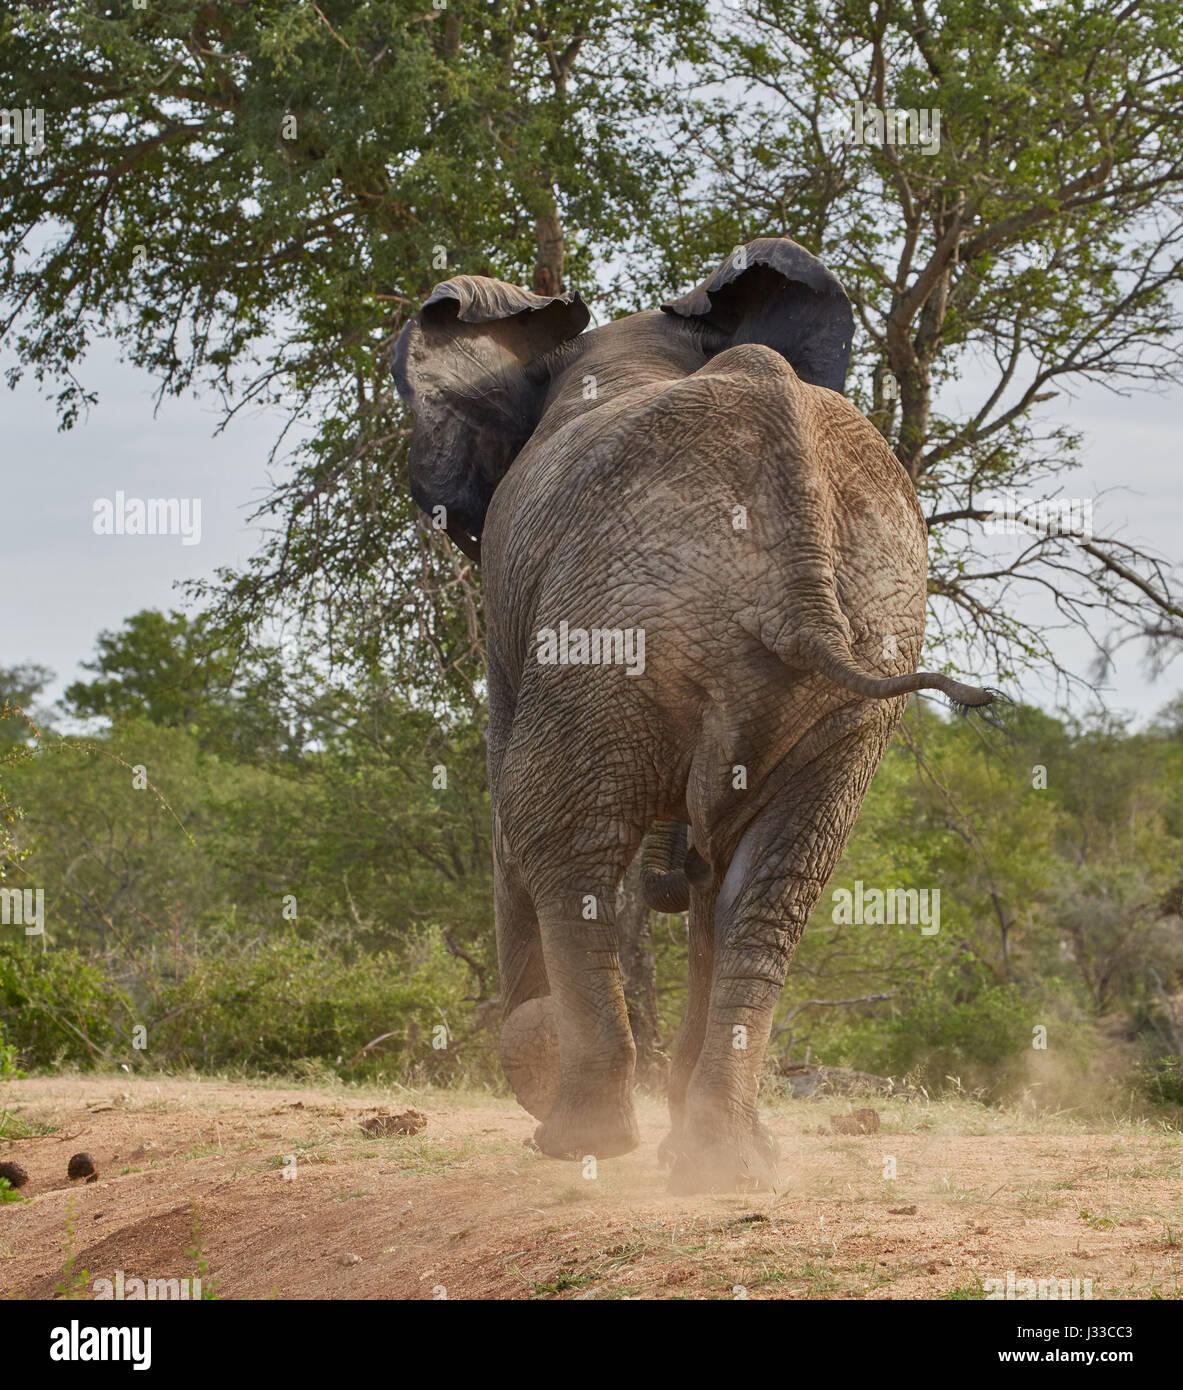 Young elephant bull running away, Krueger National park, South Africa, Africa - Stock Image